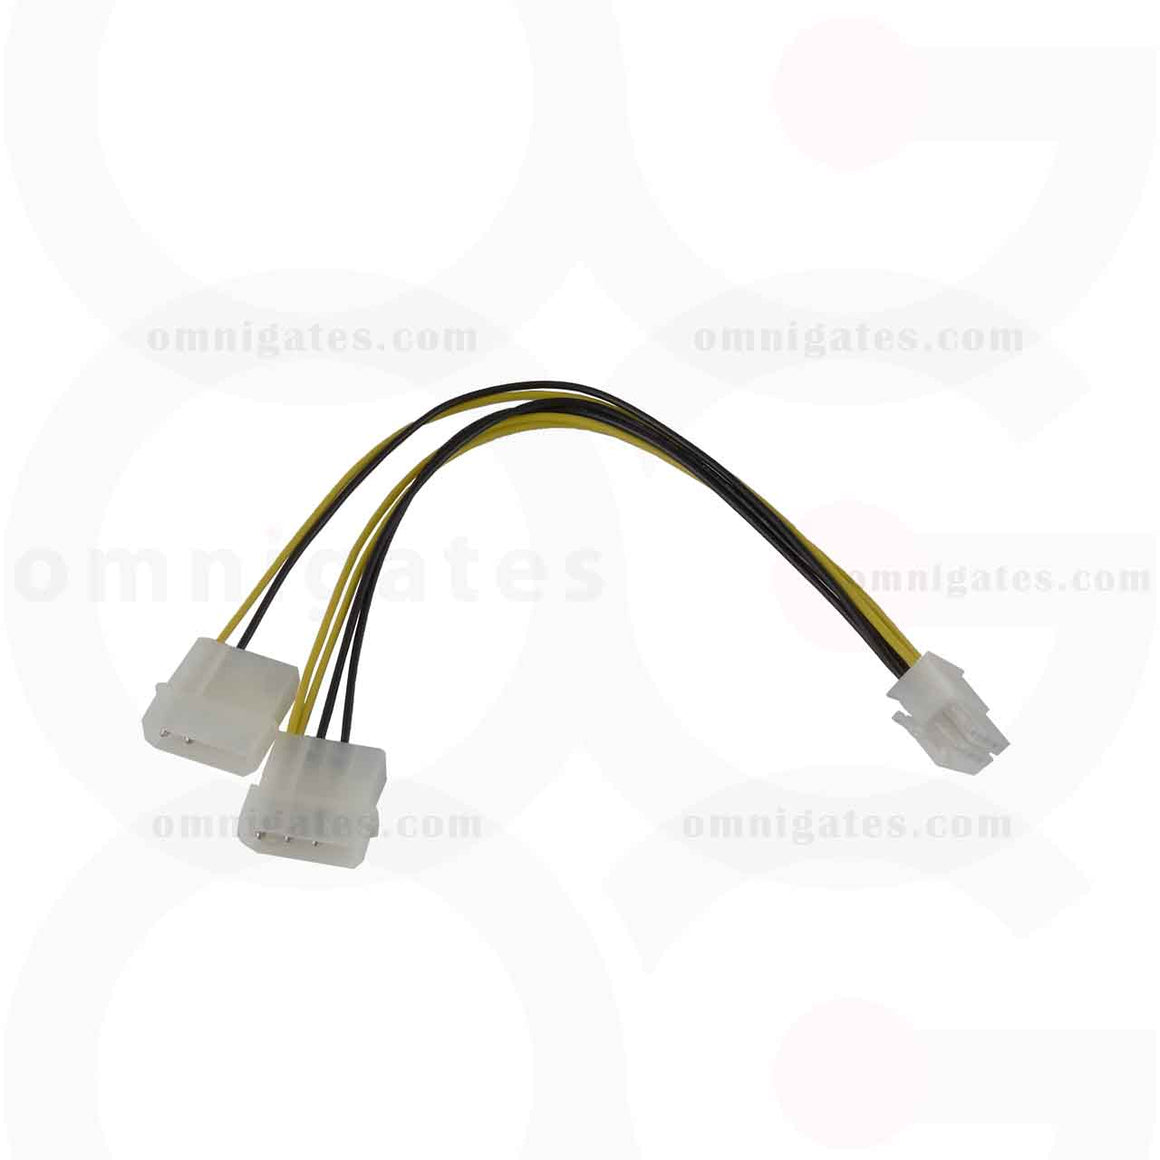 Front view of PCI Express 6 Pin to 5.25 Male x2, Internal DC Adaptor Cable, 8 inches